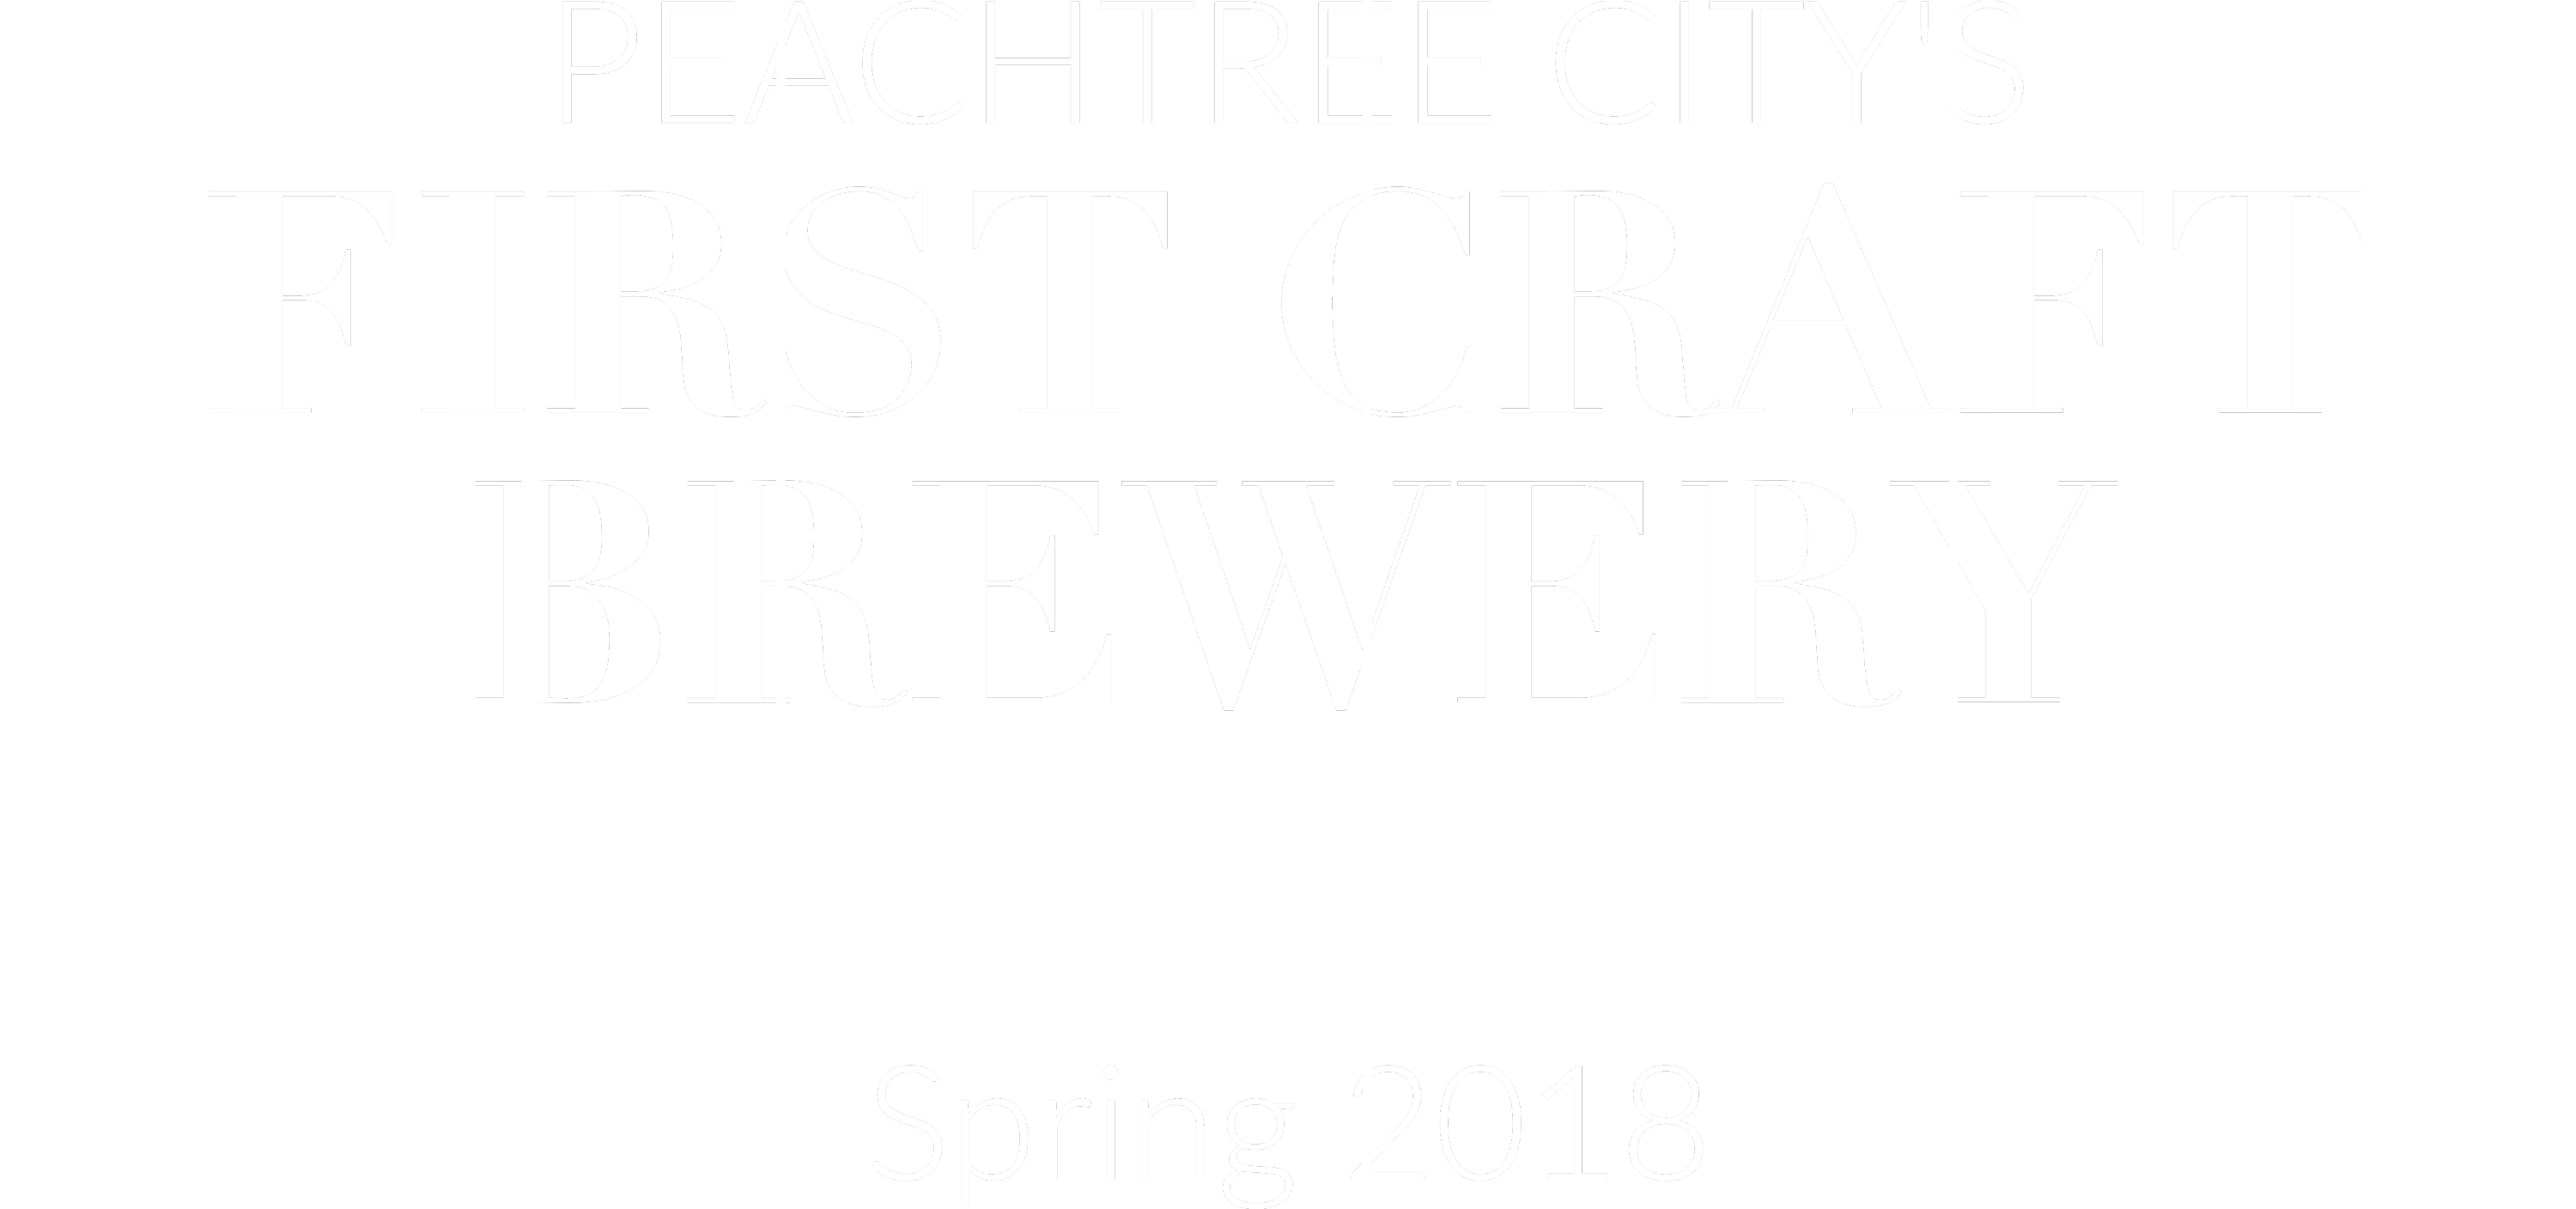 http://linecreekbrewing.com/wp-content/uploads/2017/09/peachtree-city-first-brewery-1.png